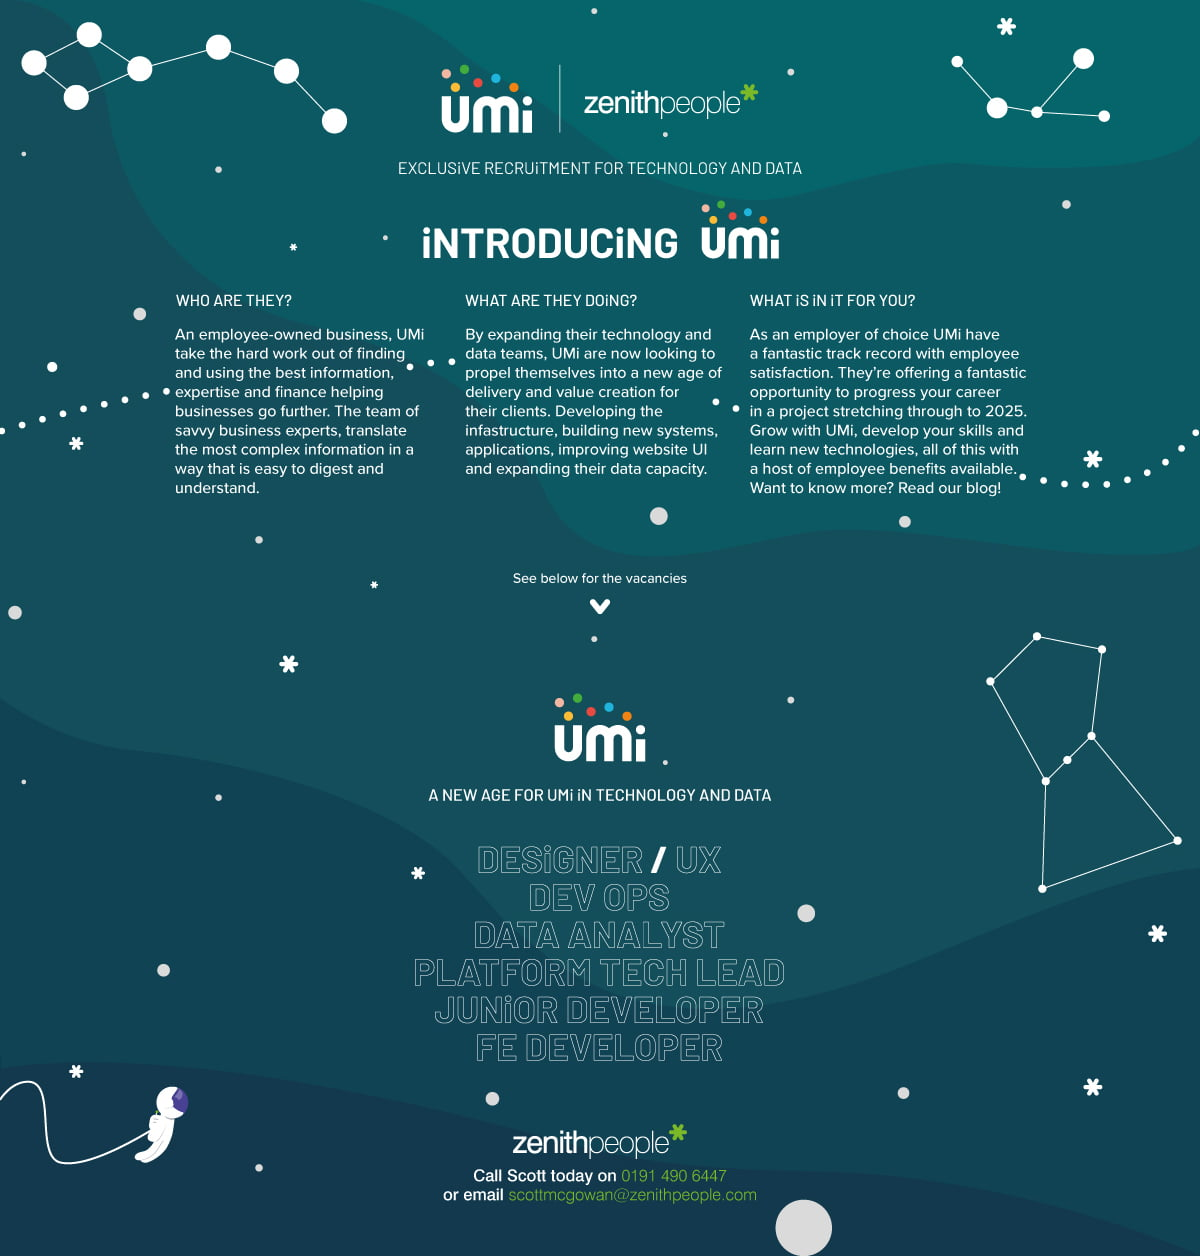 Introducing UMi information on who UMi are and the roles available